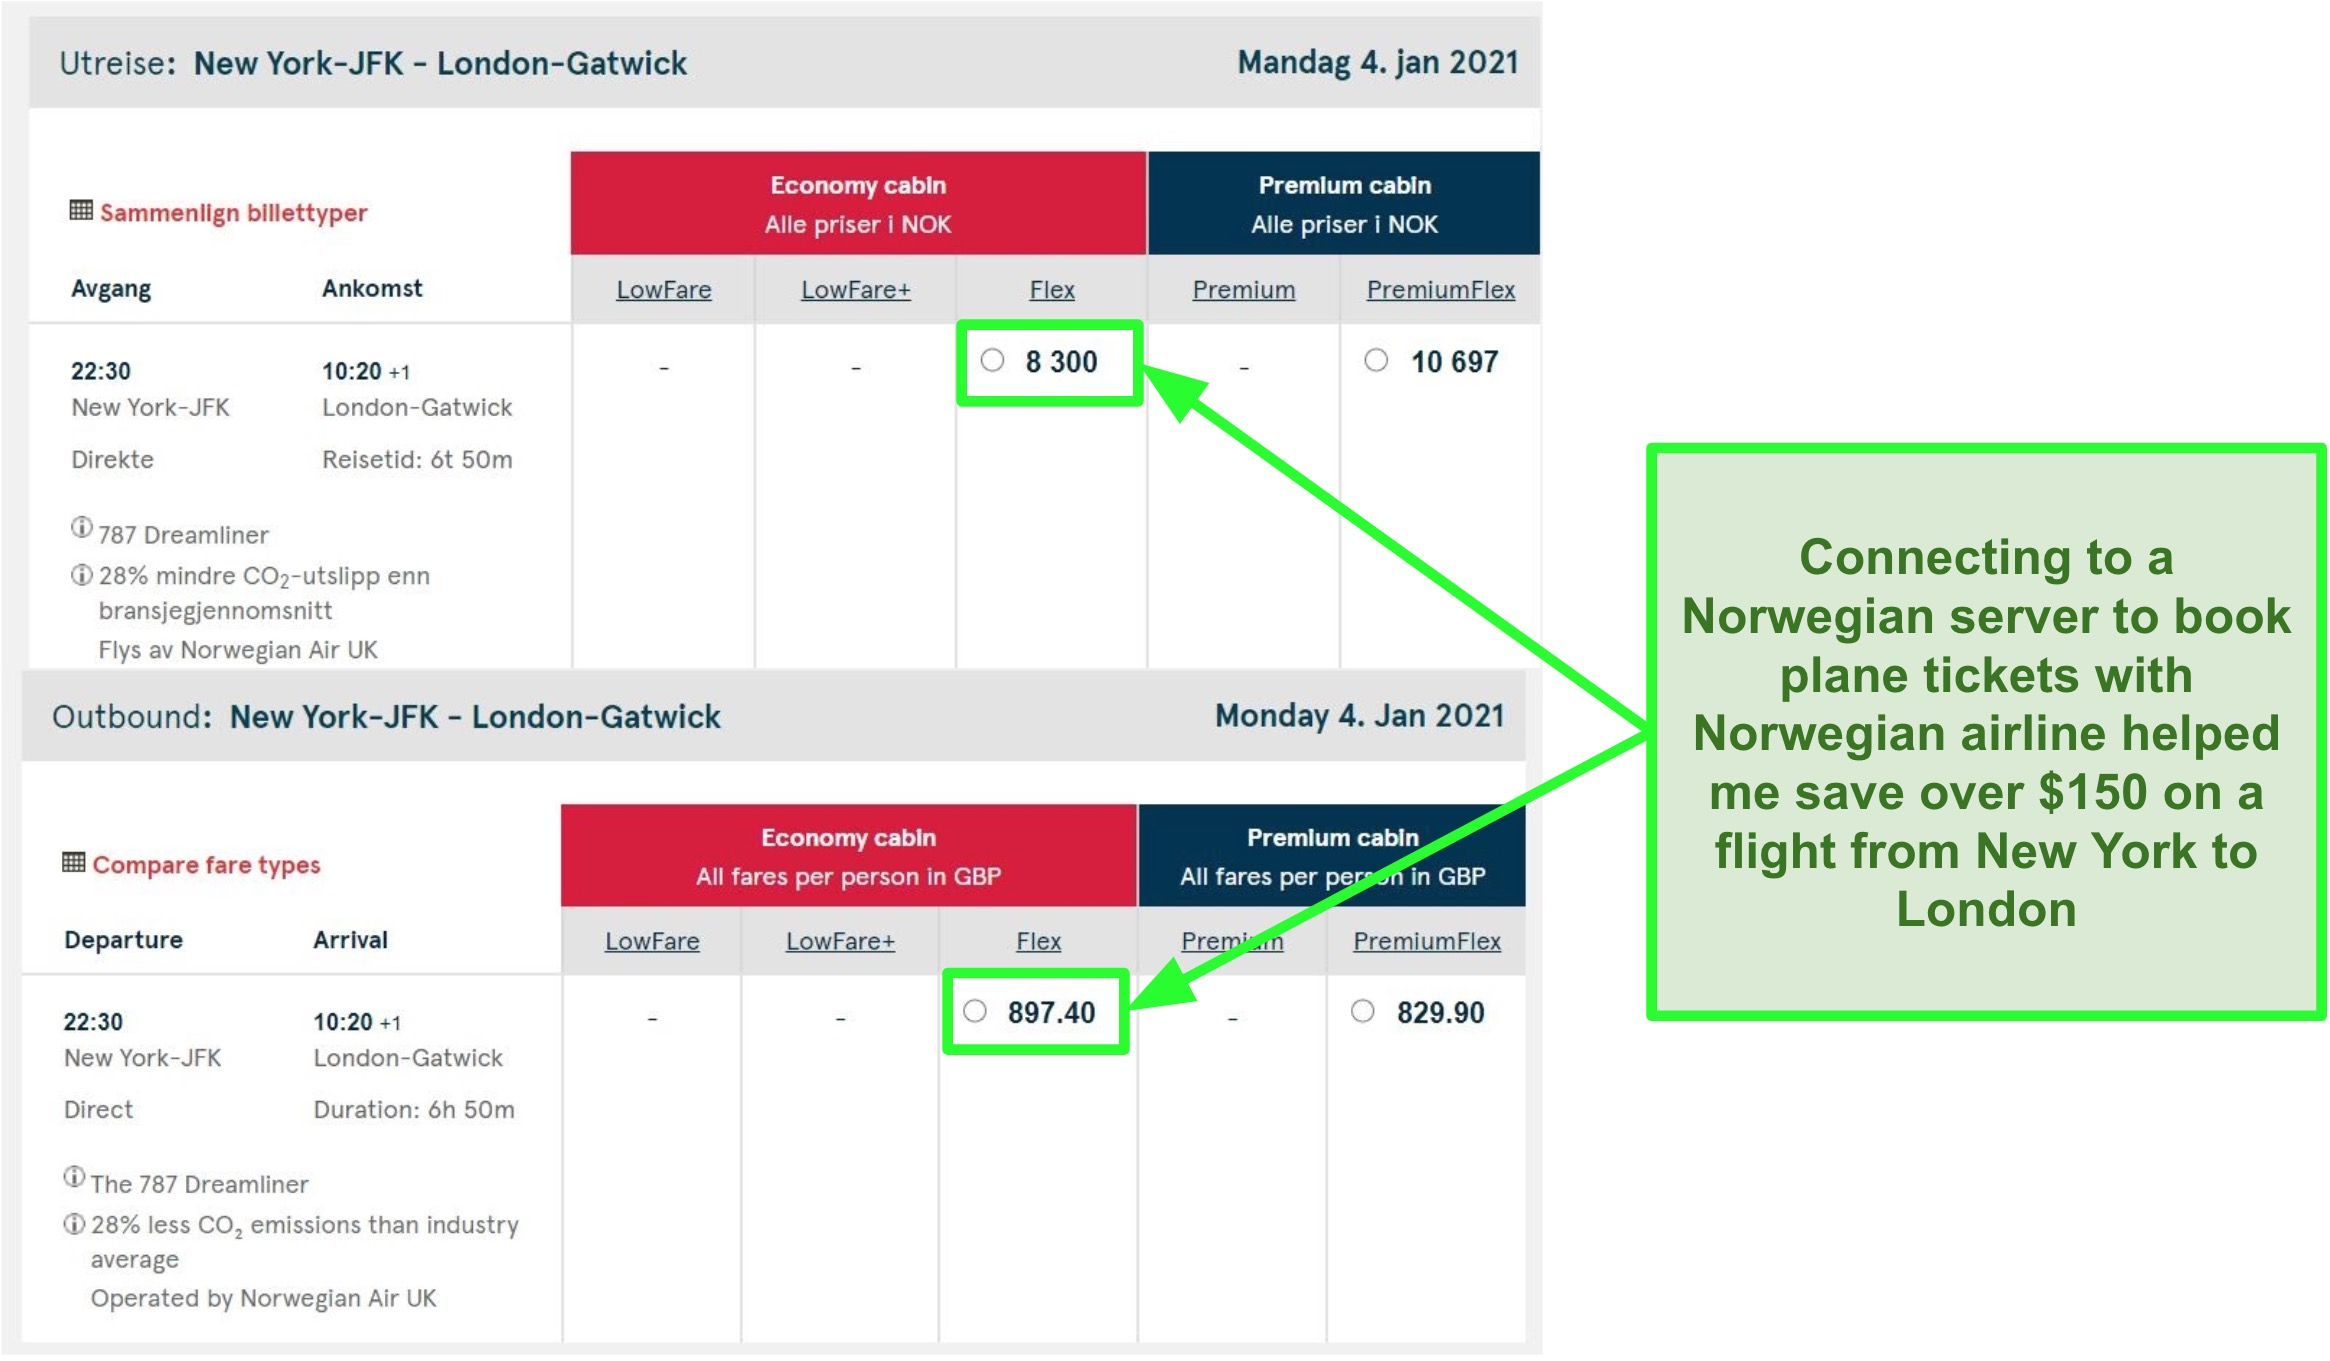 Price comparison of New York-London flights showing differences while connected to servers in Norway and the UK